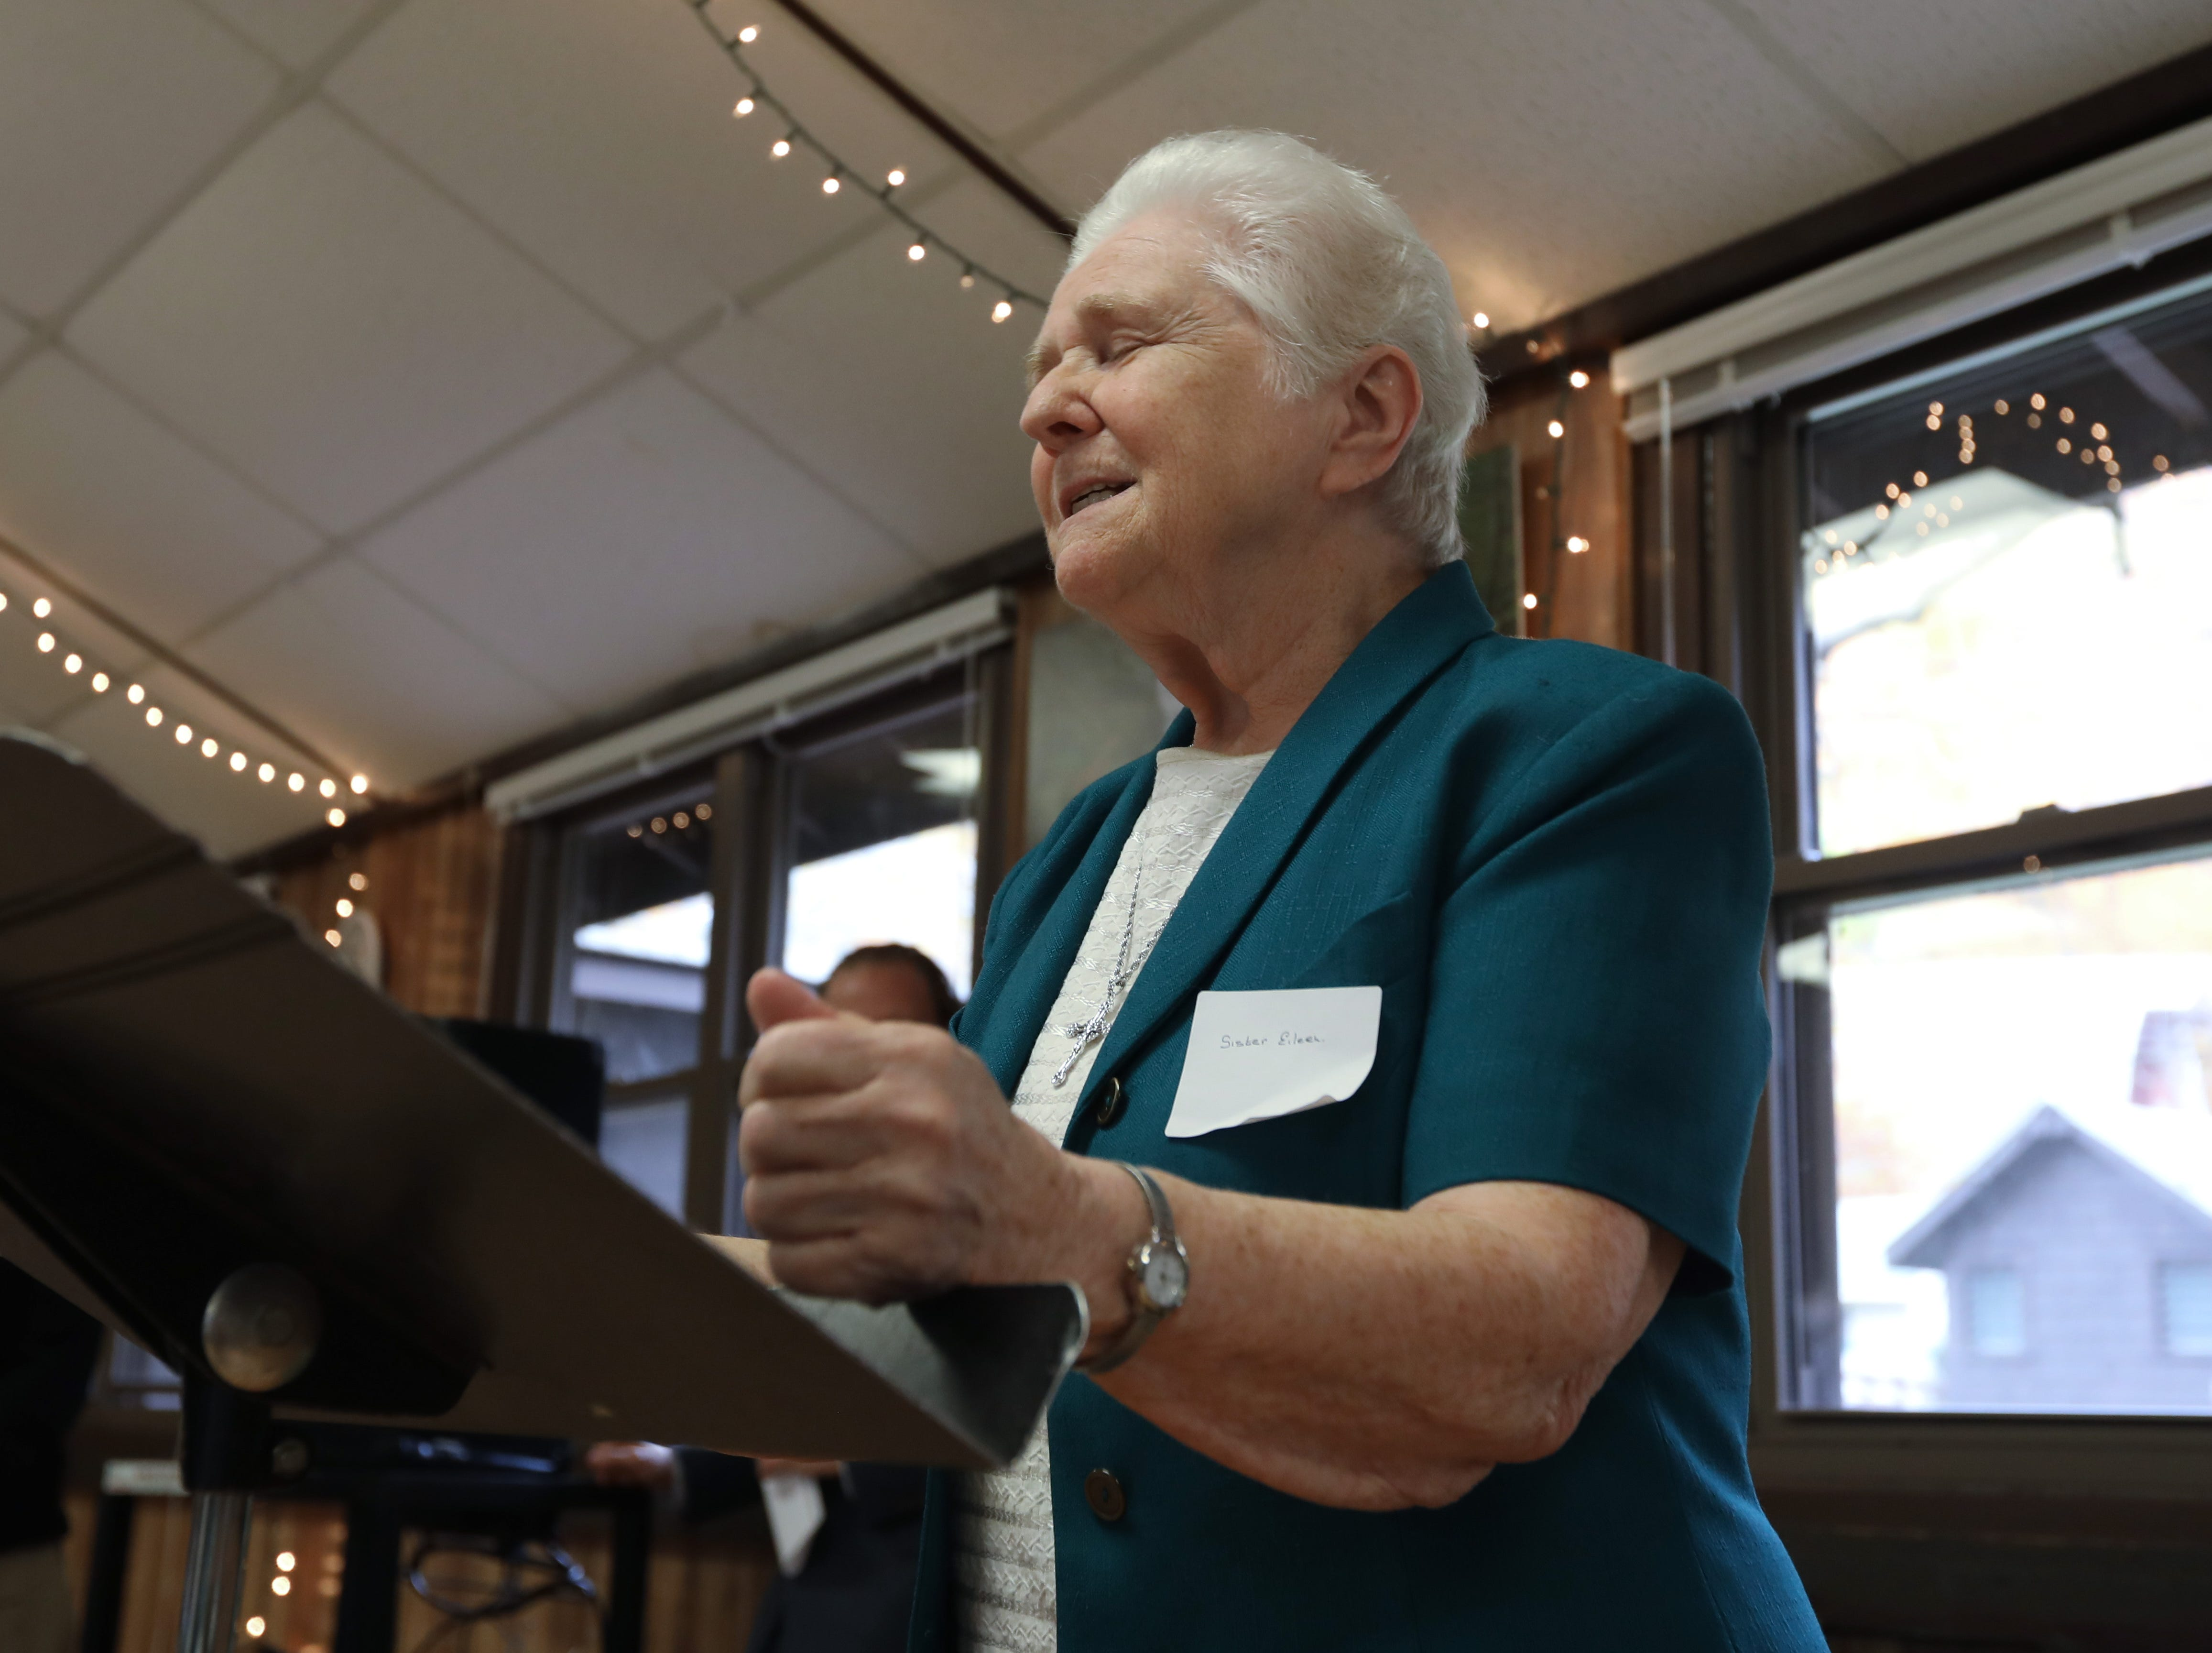 Sr. Eileen O'Farrell of Marydell speaks about Strawtown Studio's new home at the Marydell Faith and Life Center in Nyack Nov. 9, 2018. Strawtown Studio runs arts and ecology programs for children and young adults.